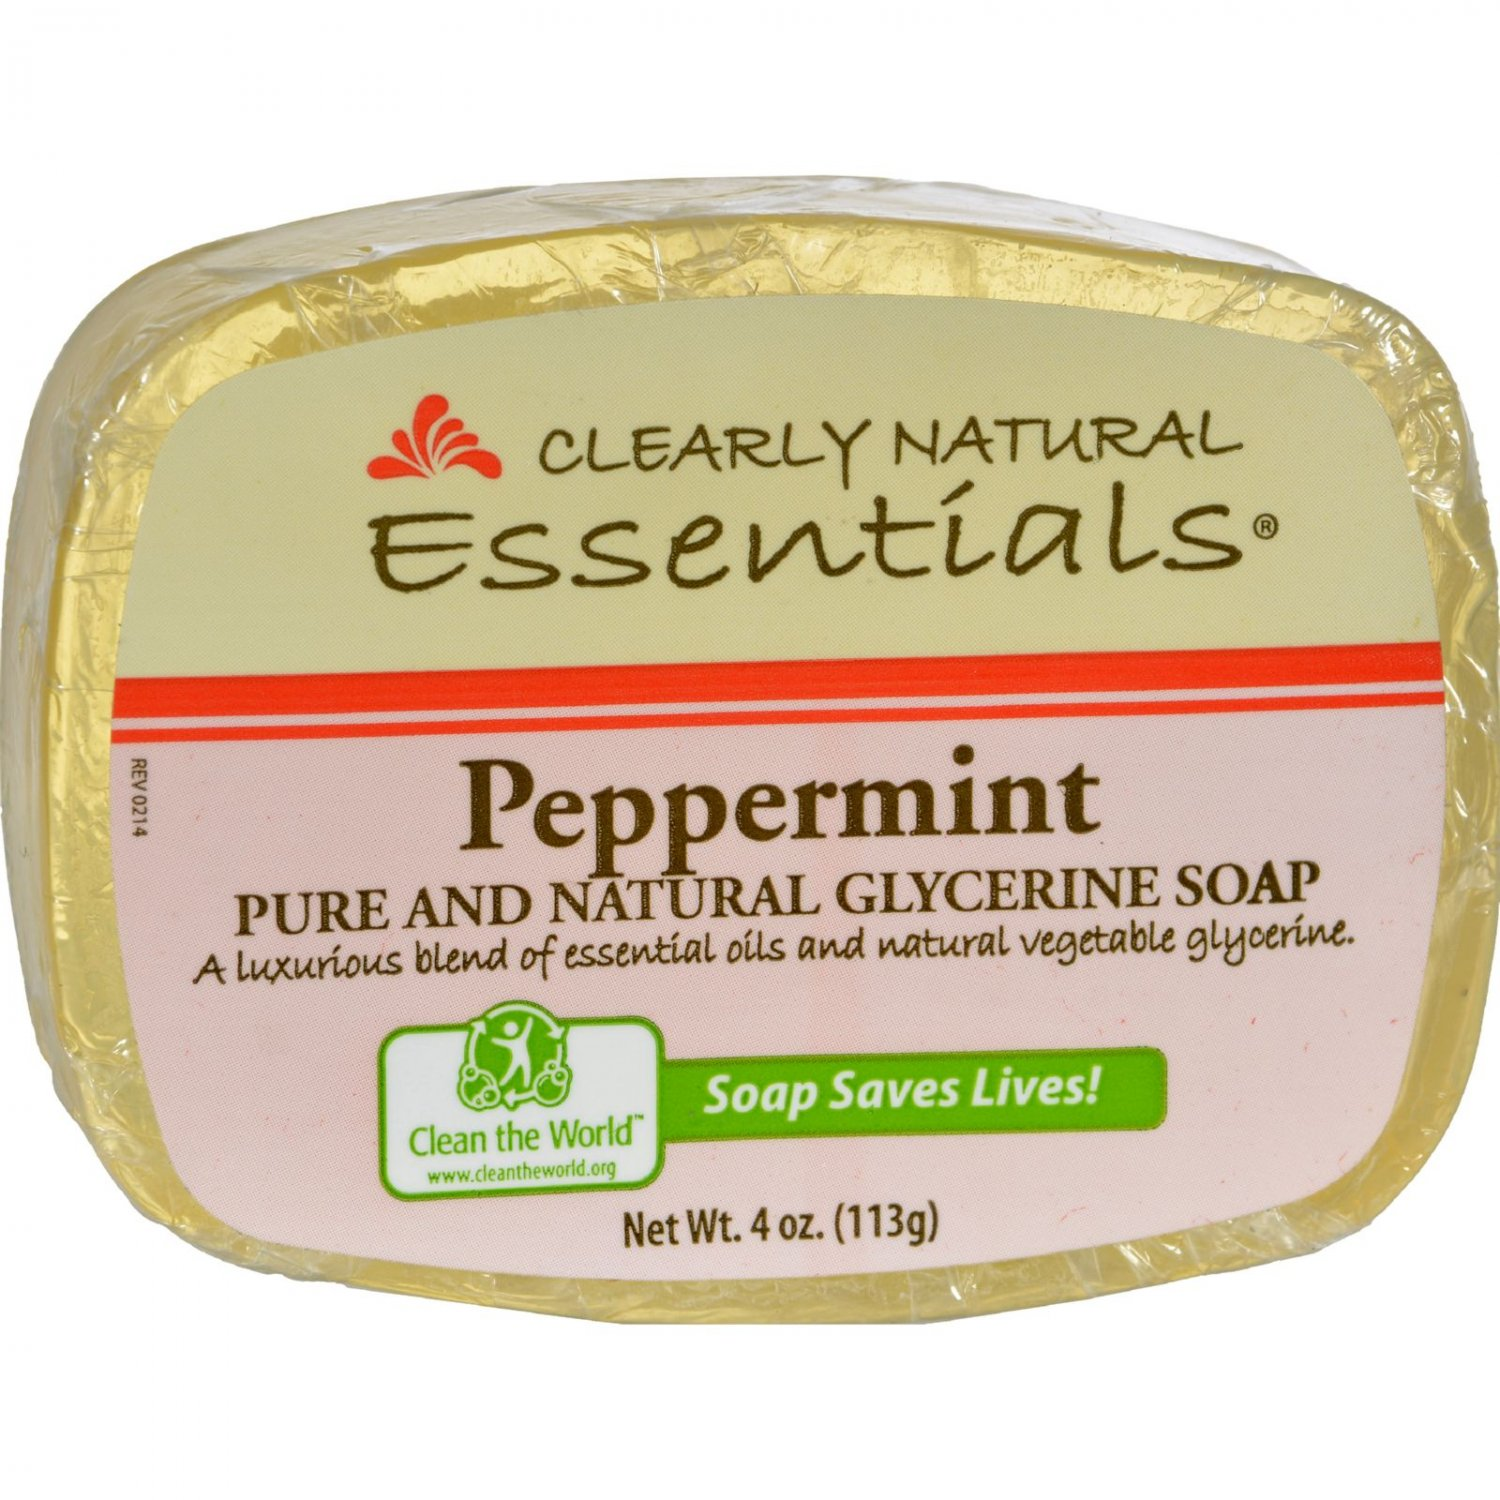 Clearly Natural Glycerine Bar Soap Peppermint - 4 oz